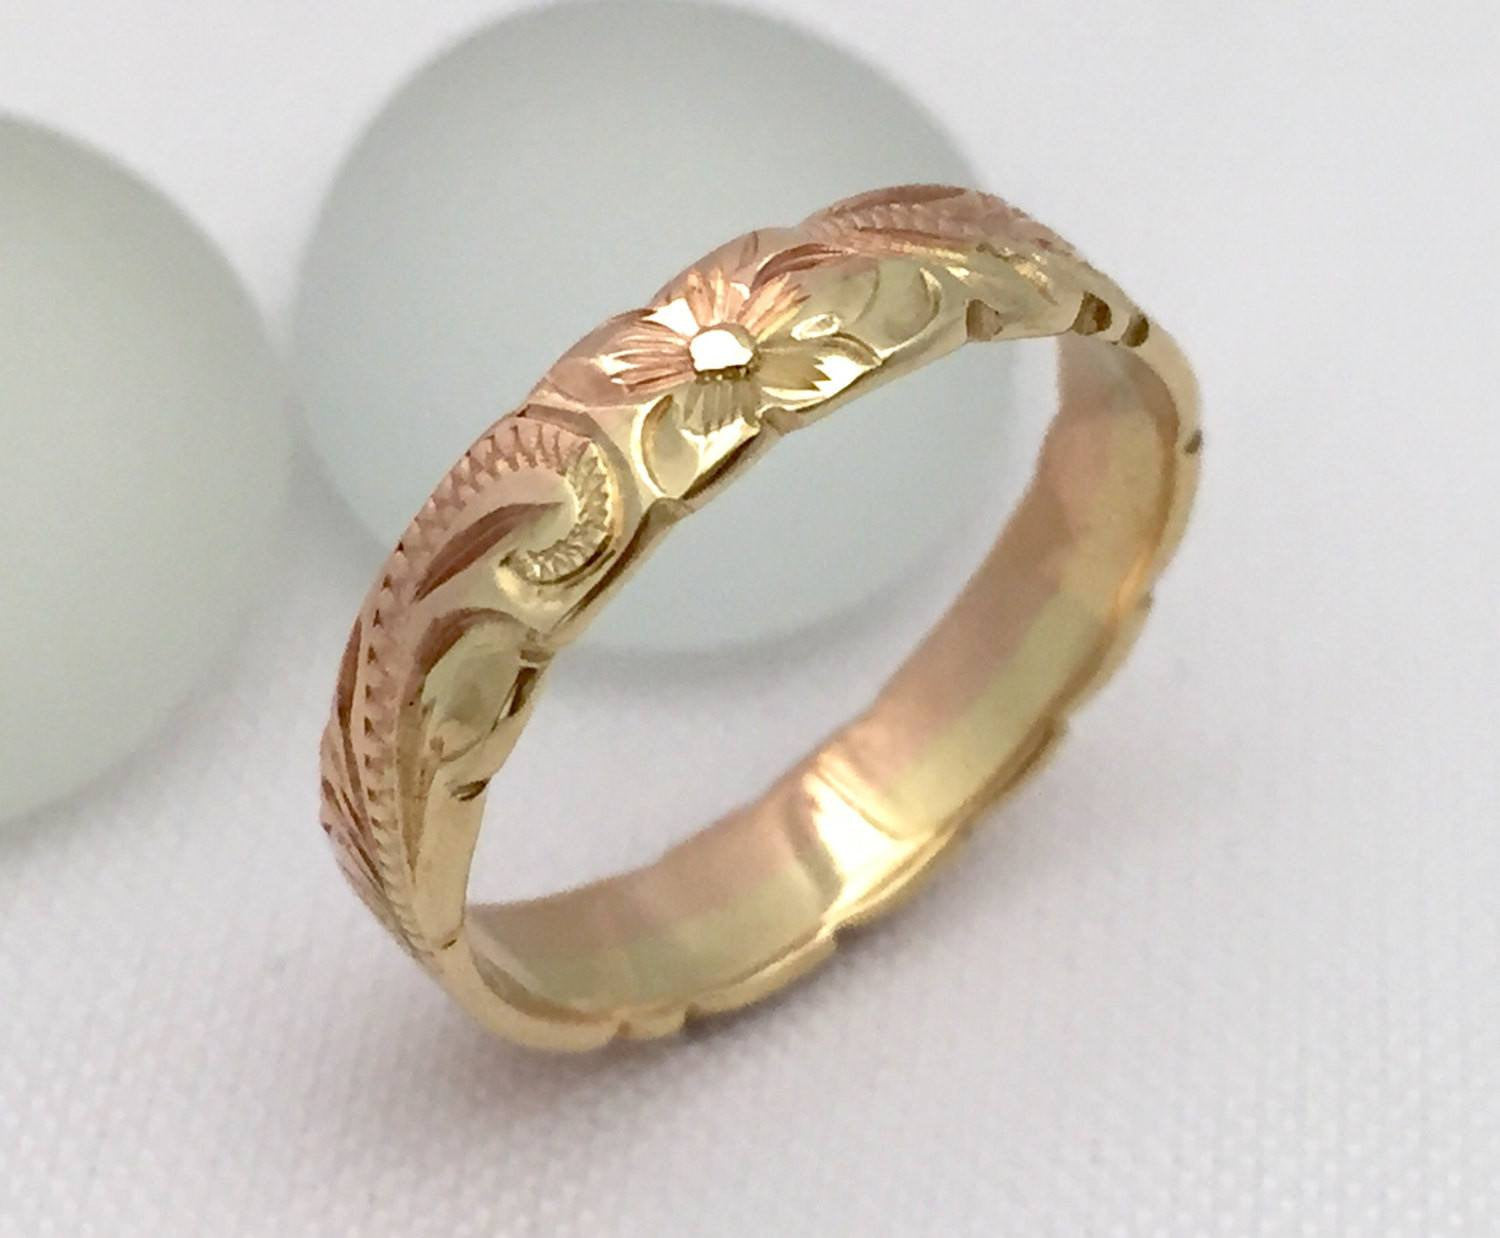 14K Gold Ring Traditional Hawaiian Hand Engraved (4mm Width, Flat Style) - Aolani Hawaii - 1